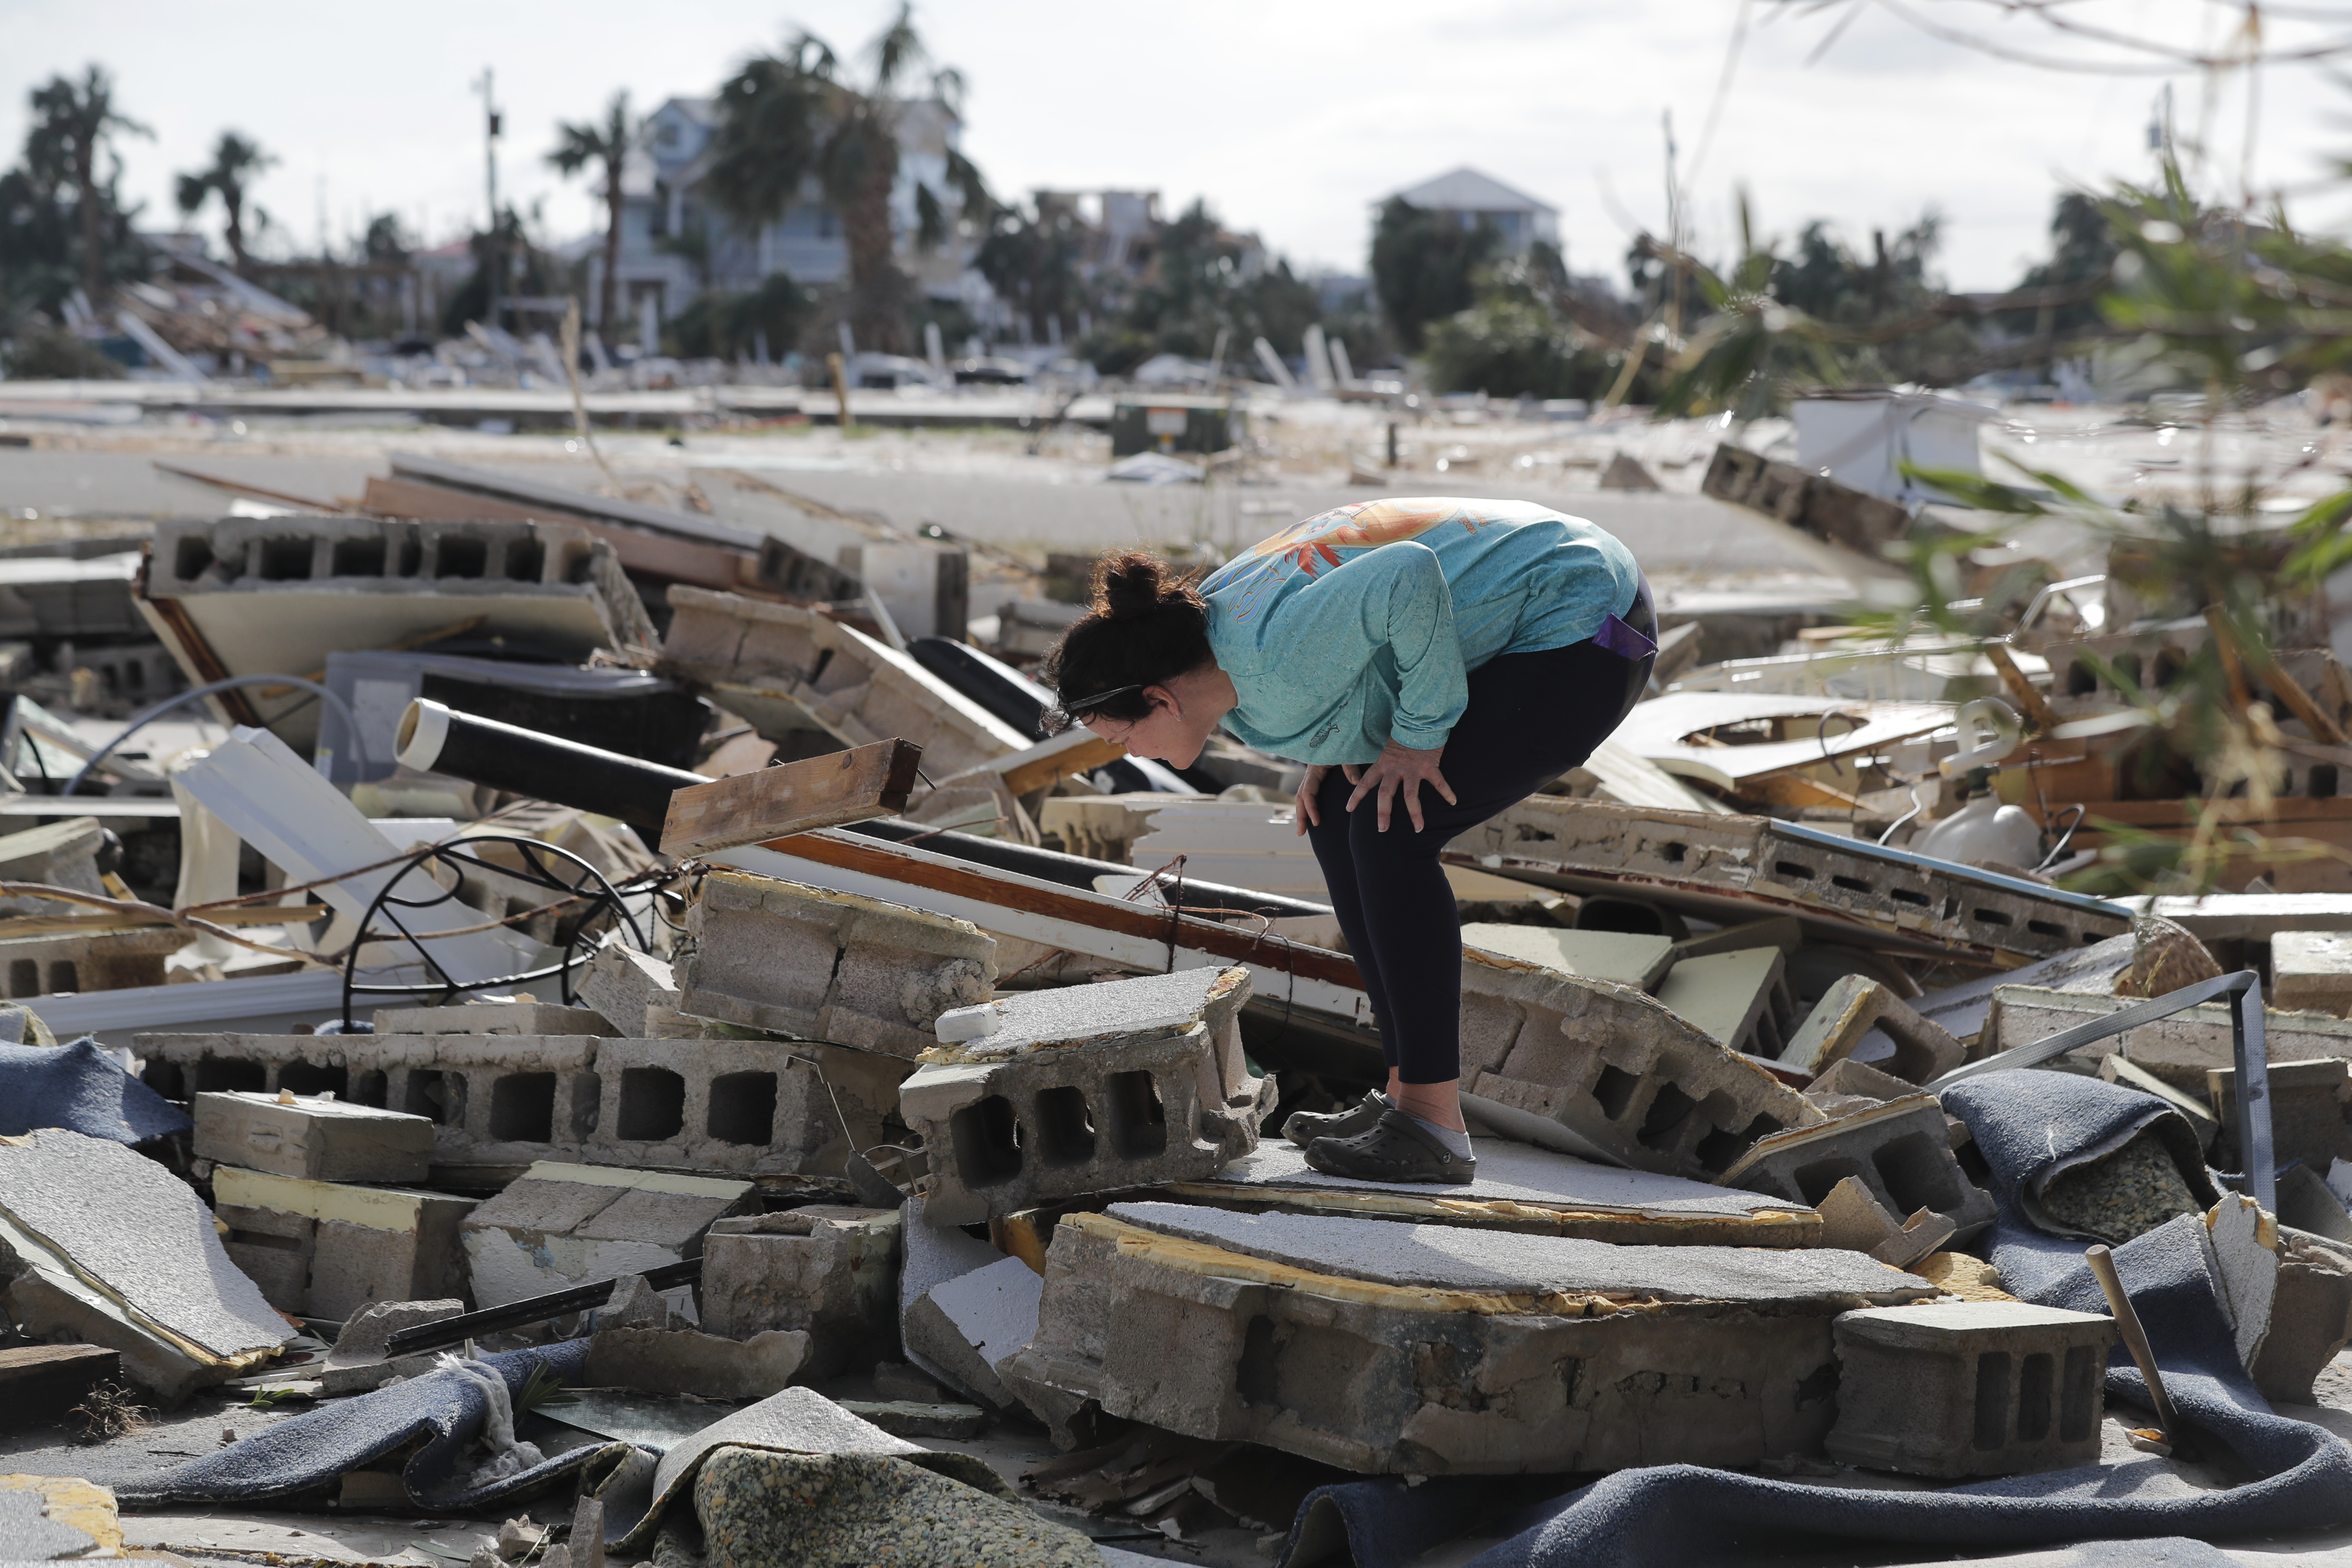 Mishelle McPherson looks for her friend in the rubble of her home, since she knows she stayed behind in the home during Hurricane Michael, in Mexico Beach, Fla., Thursday, Oct. 11, 2018.